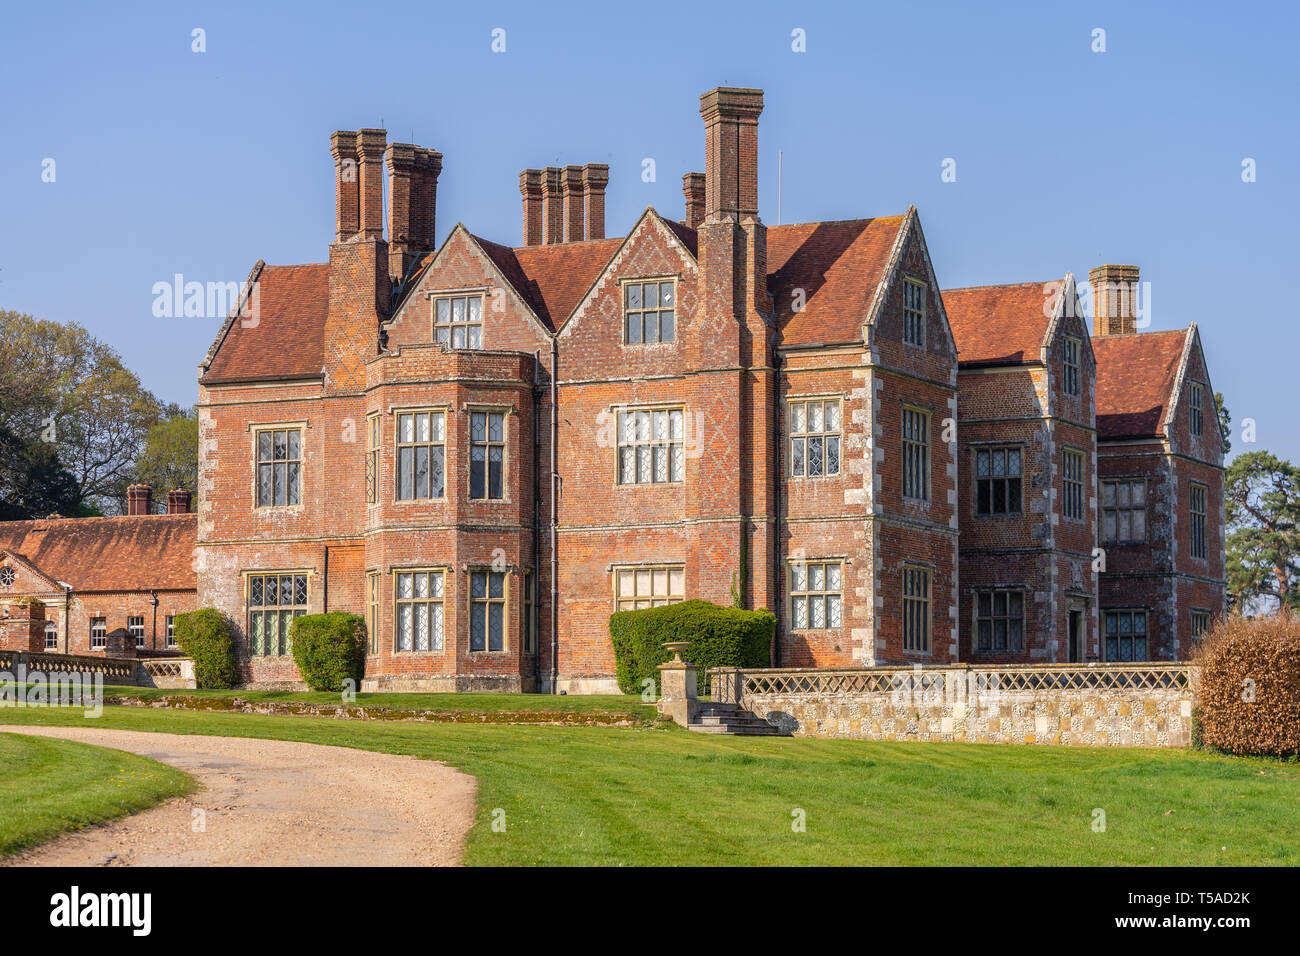 Breamore House, an Elizabethan manor house built in the 16th century located in the Hampshire countryside, Hampshire, England, UK Stock Photo